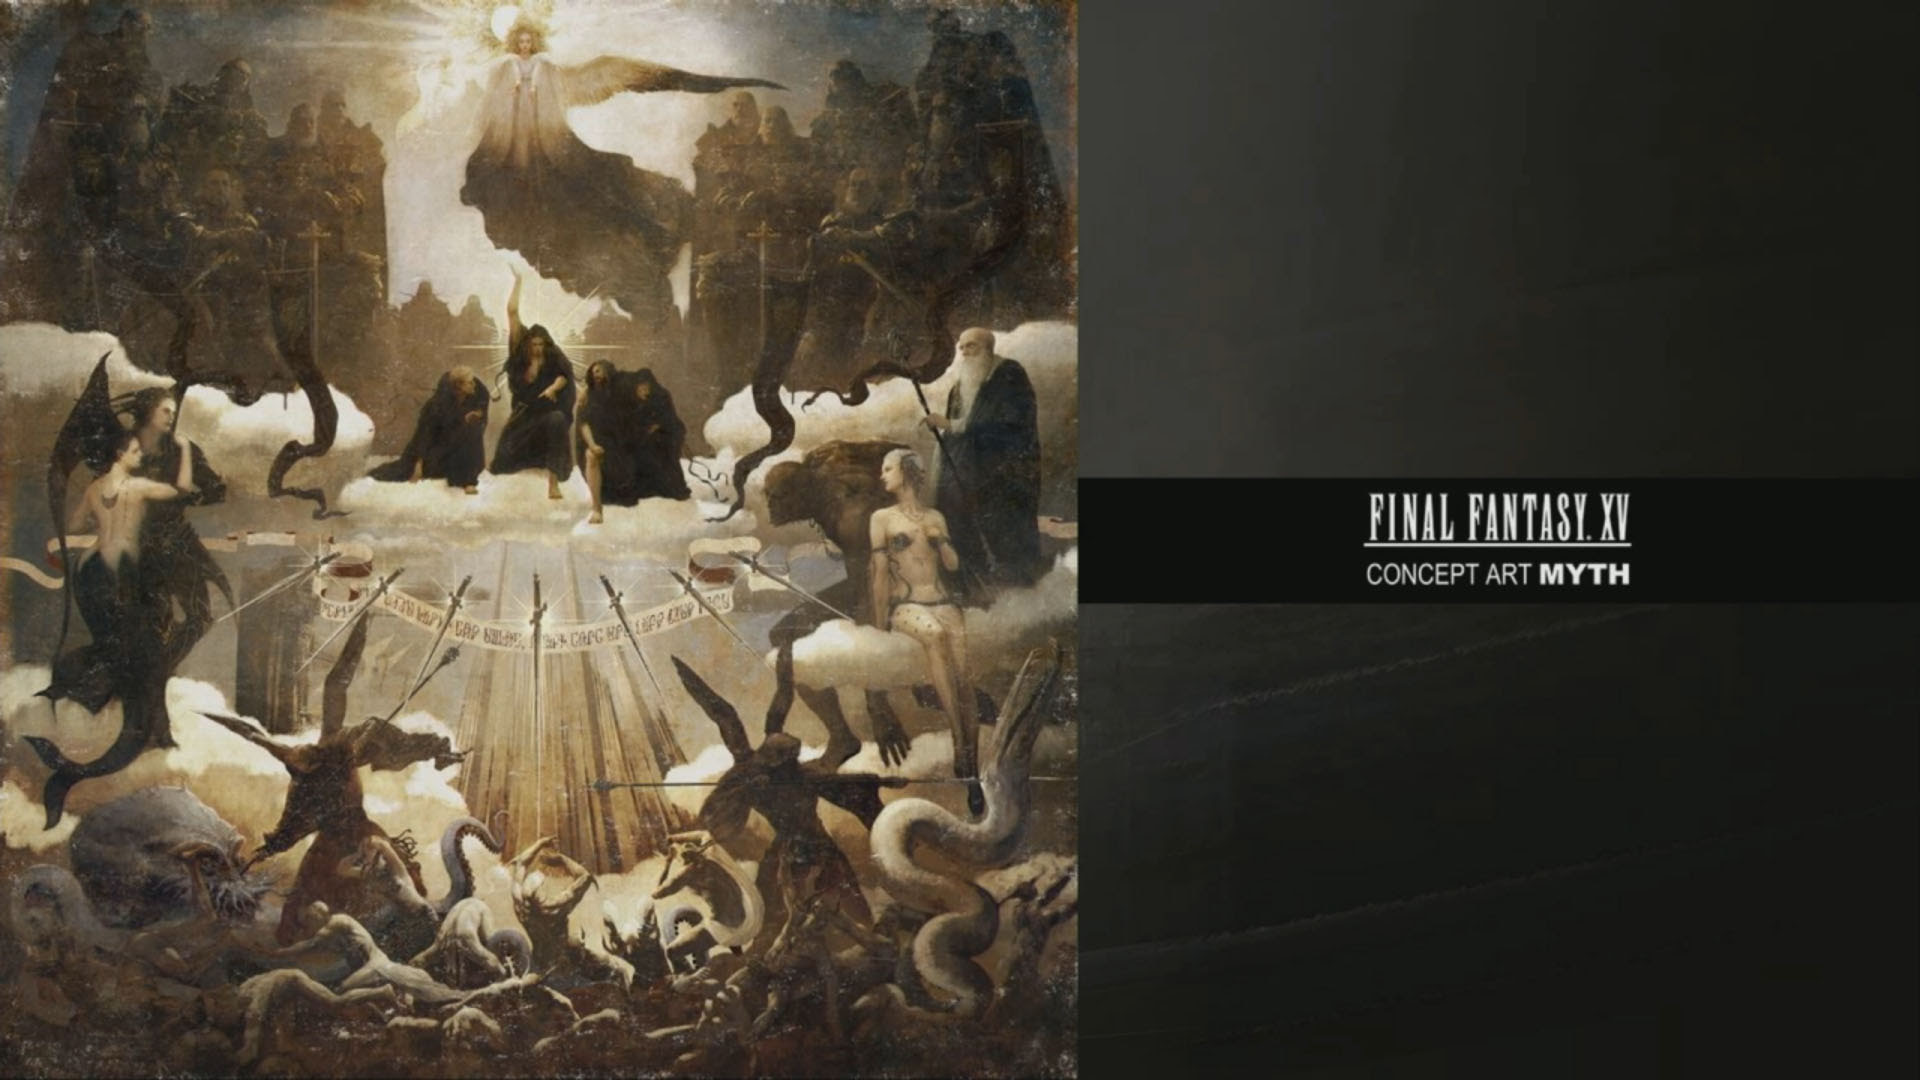 Interesting Theory About The Whole Story Final Fantasy Xv